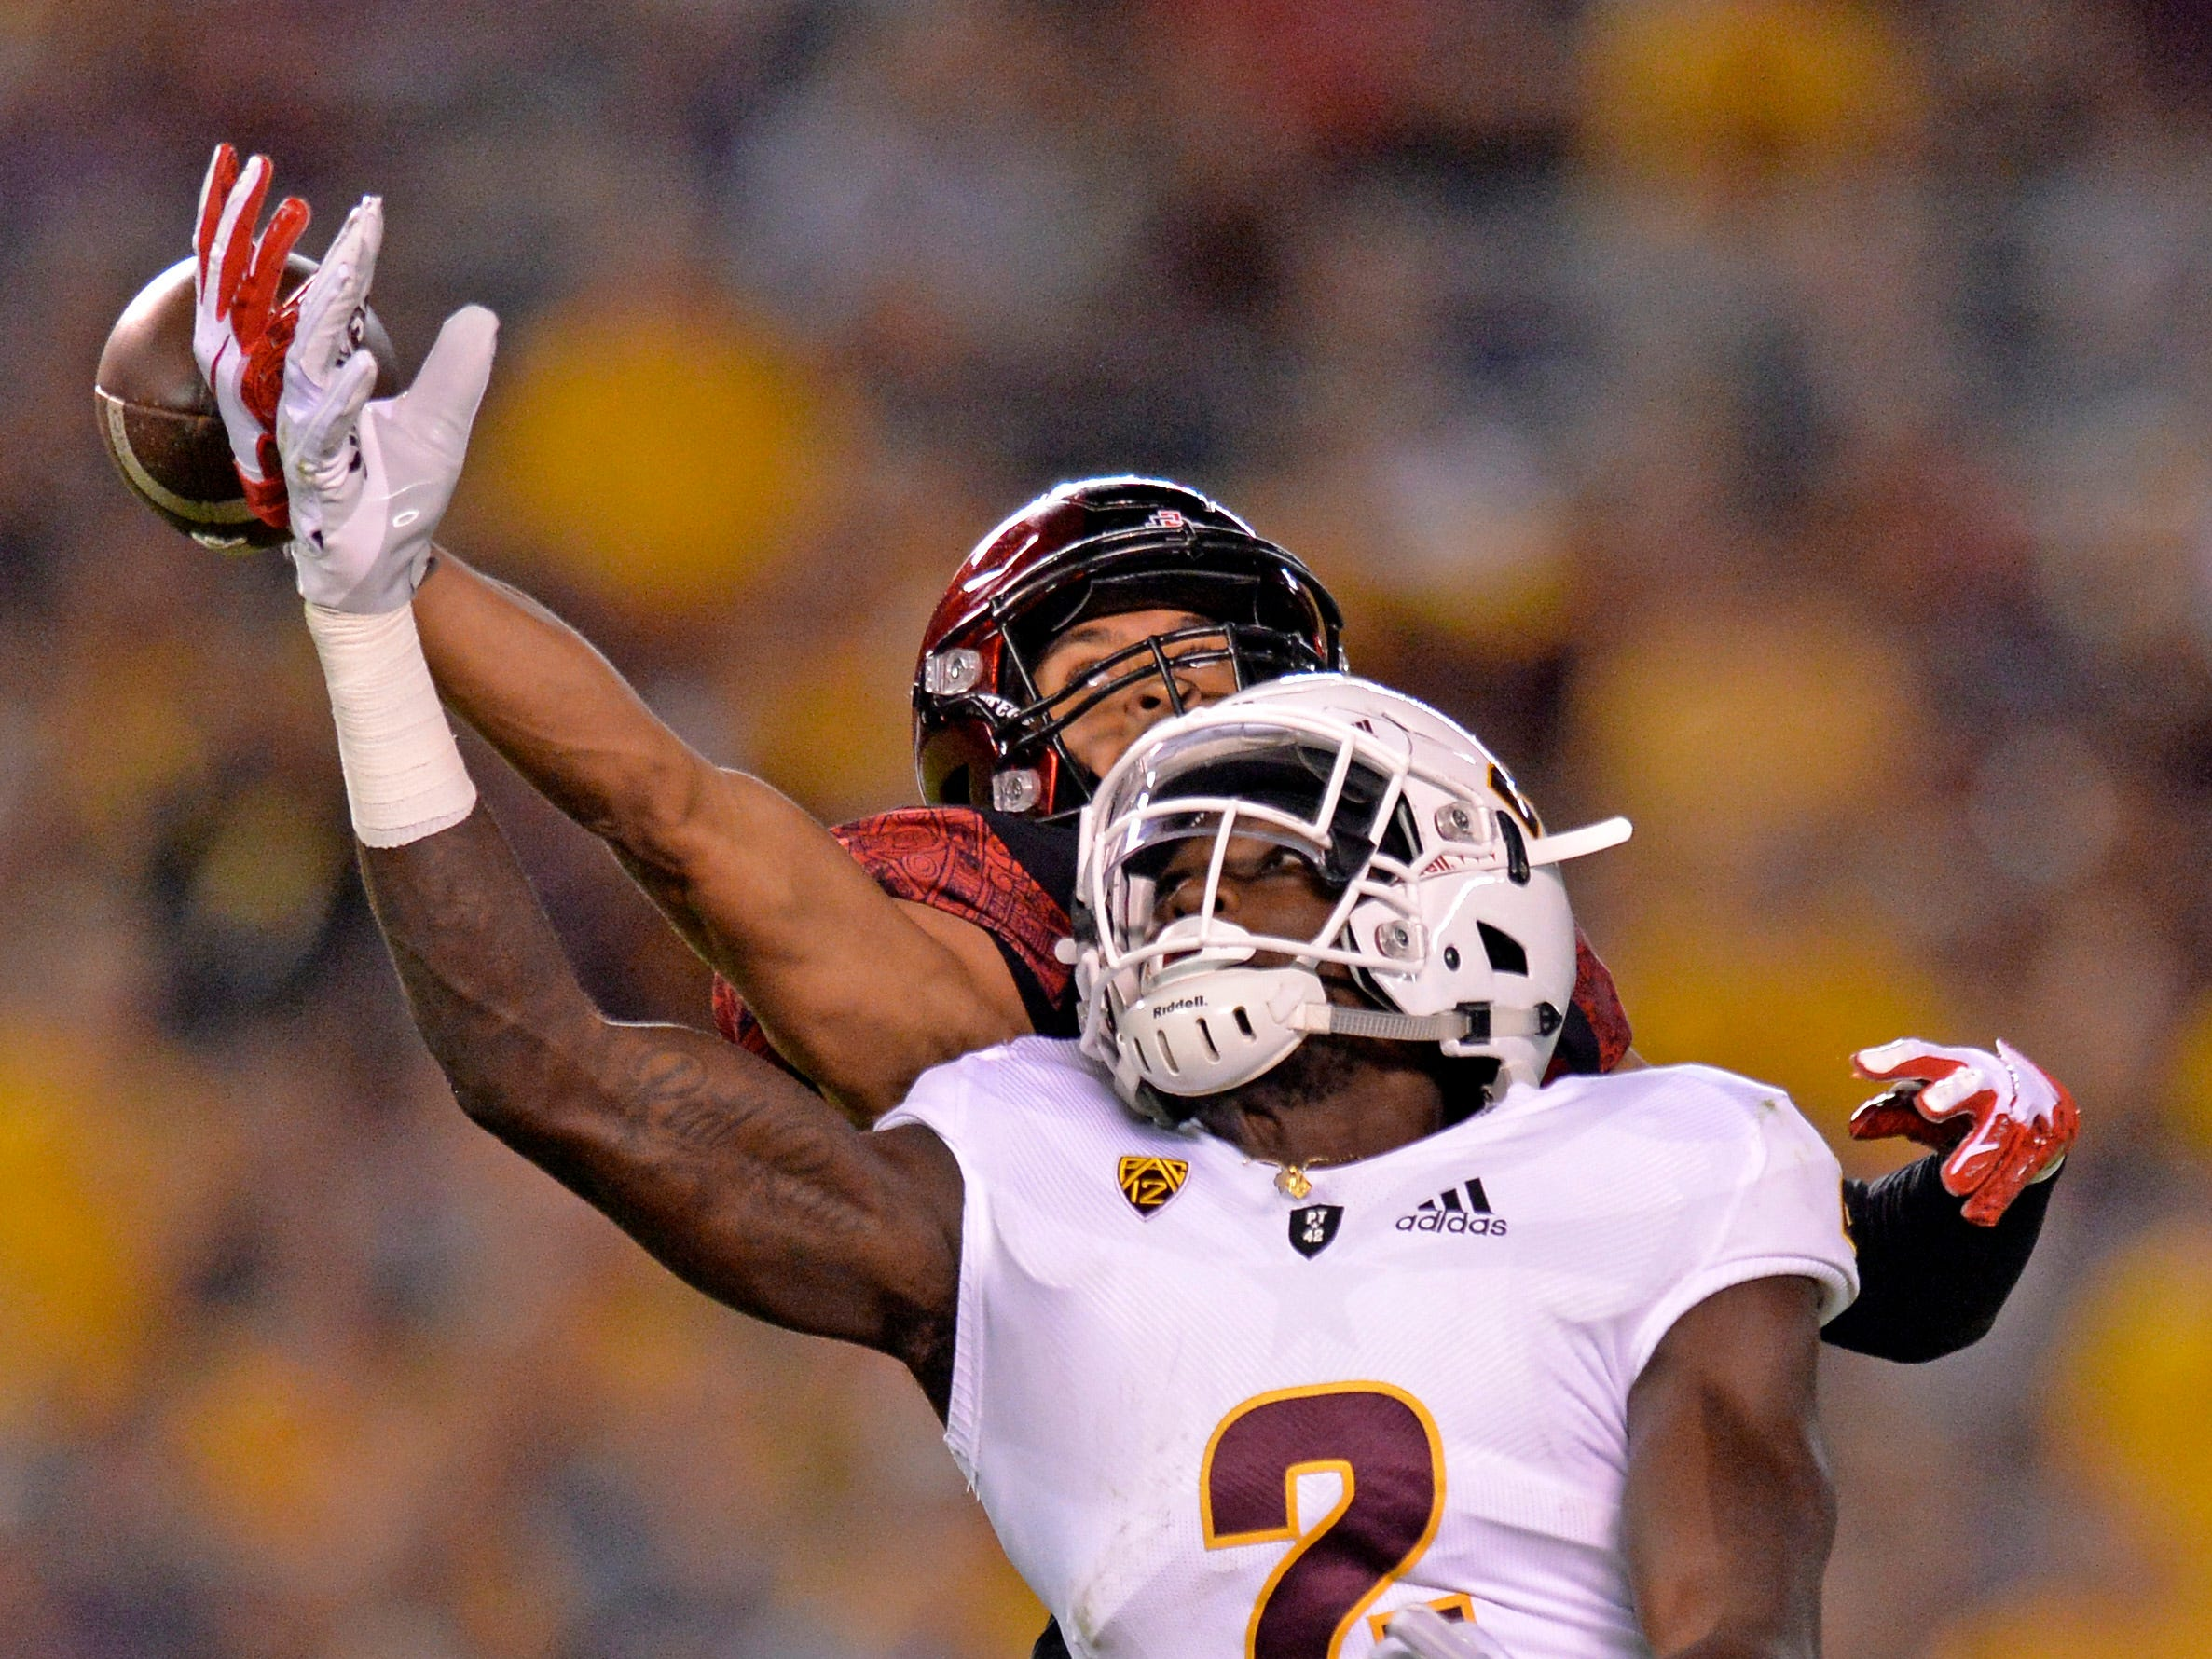 Sep 15, 2018; San Diego, CA, USA; Arizona State Sun Devils wide receiver Brandon Aiyuk (2) is defended on a pass by San Diego State Aztecs cornerback Ron Smith (17) during the first quarter at SDCCU Stadium. Mandatory Credit: Jake Roth-USA TODAY Sports